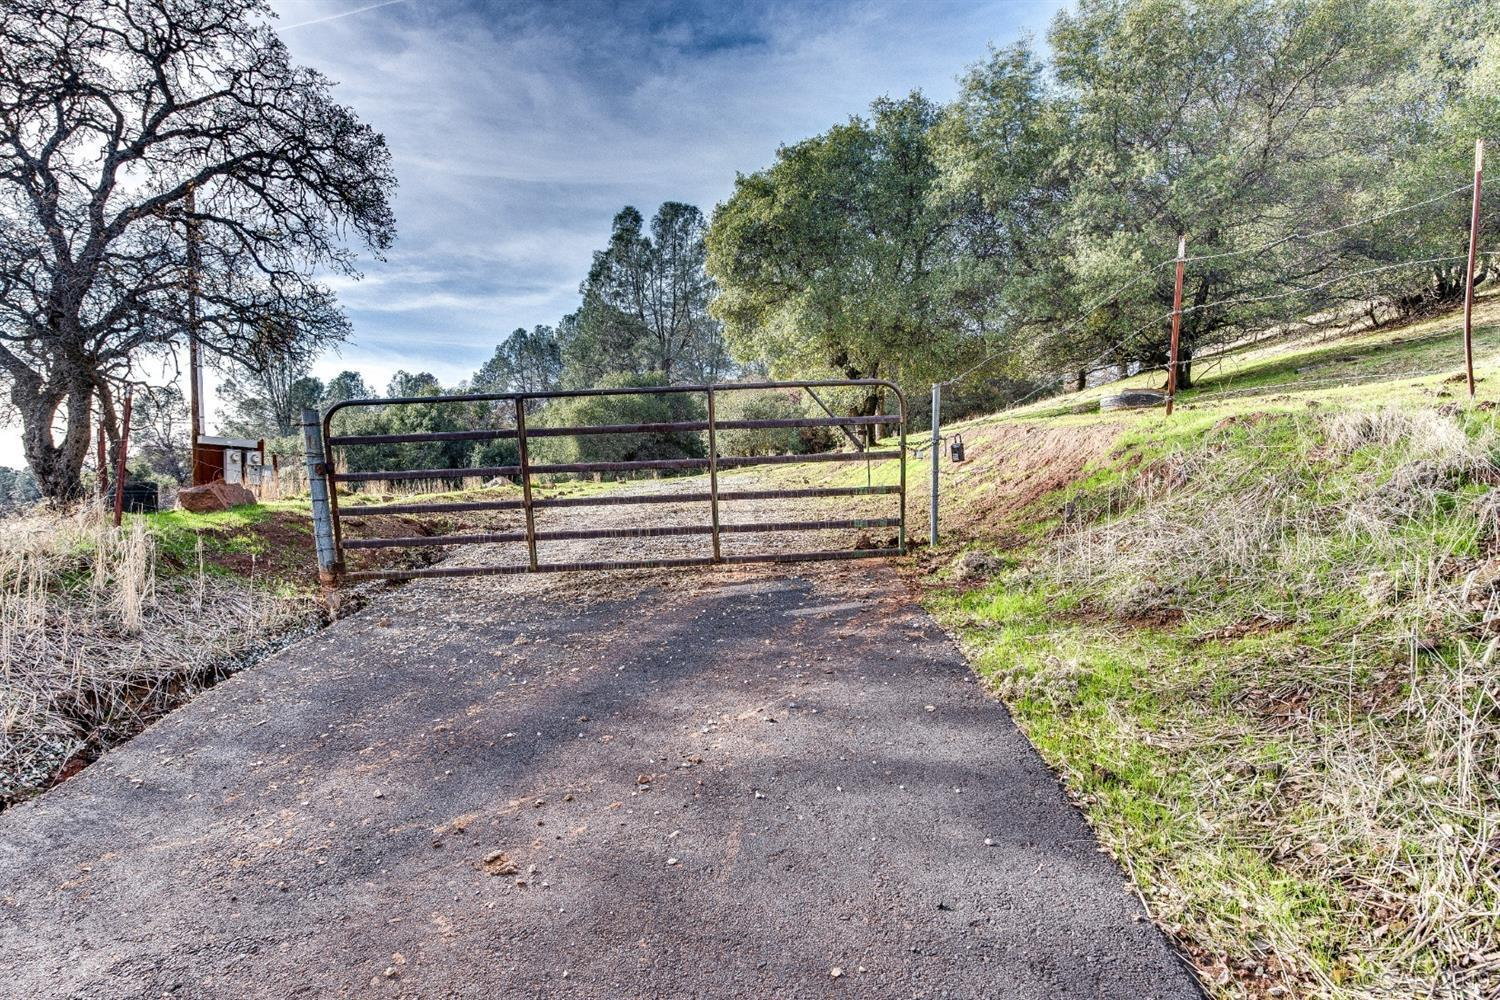 Your Dream Home is waiting to be built on this spectacular property with views of the Sierra Mountains and the village below. There is a large pad at the top to build your dream home. With some tree trimming you would have a 360 view on the top.  It's near  Twisted Oak Winery, so on those summer night concerts one may hear the music.  Seller has just installed a new driveway  for easy access. The property is mostly fenced.  There are 2 electrical meters at the corner of the property by Red Hill Road. A dirt road takes you to the back of the property and to the top where the large pad is for building your dream home. The well was drilled in 2008, it produced 7 gallon per minute and electricity is to the well.  Come take a look you won't be disappointed.  Property is between Murphys and Angels Camp.